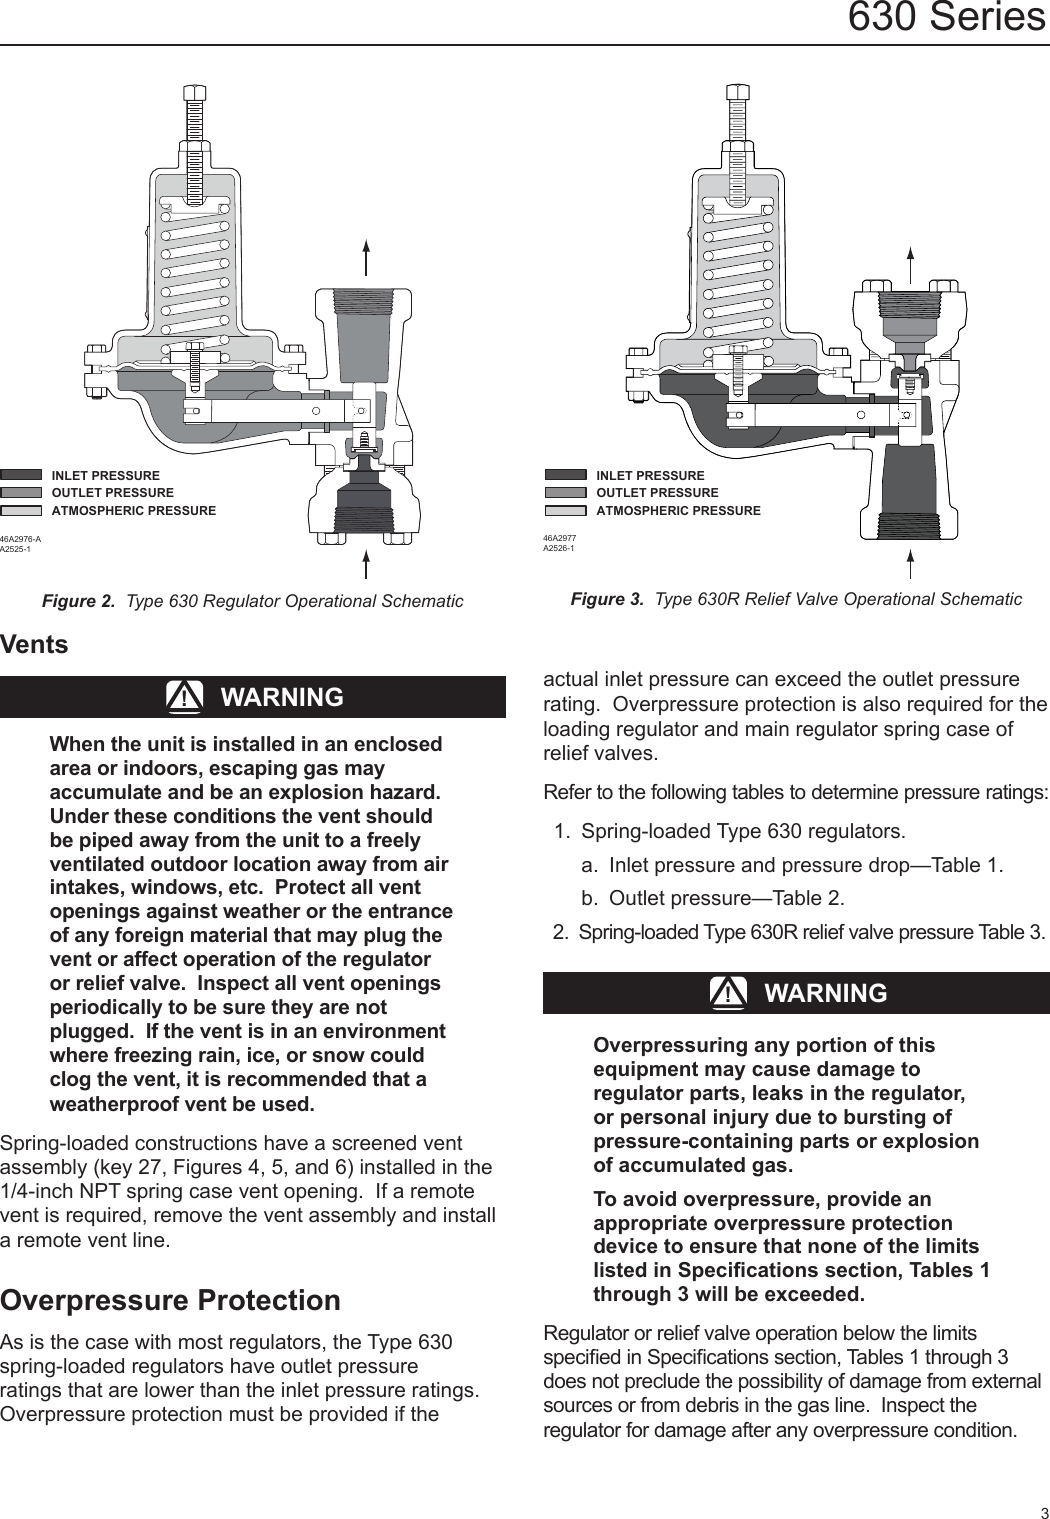 Emerson 630 Regulator Instruction Manual